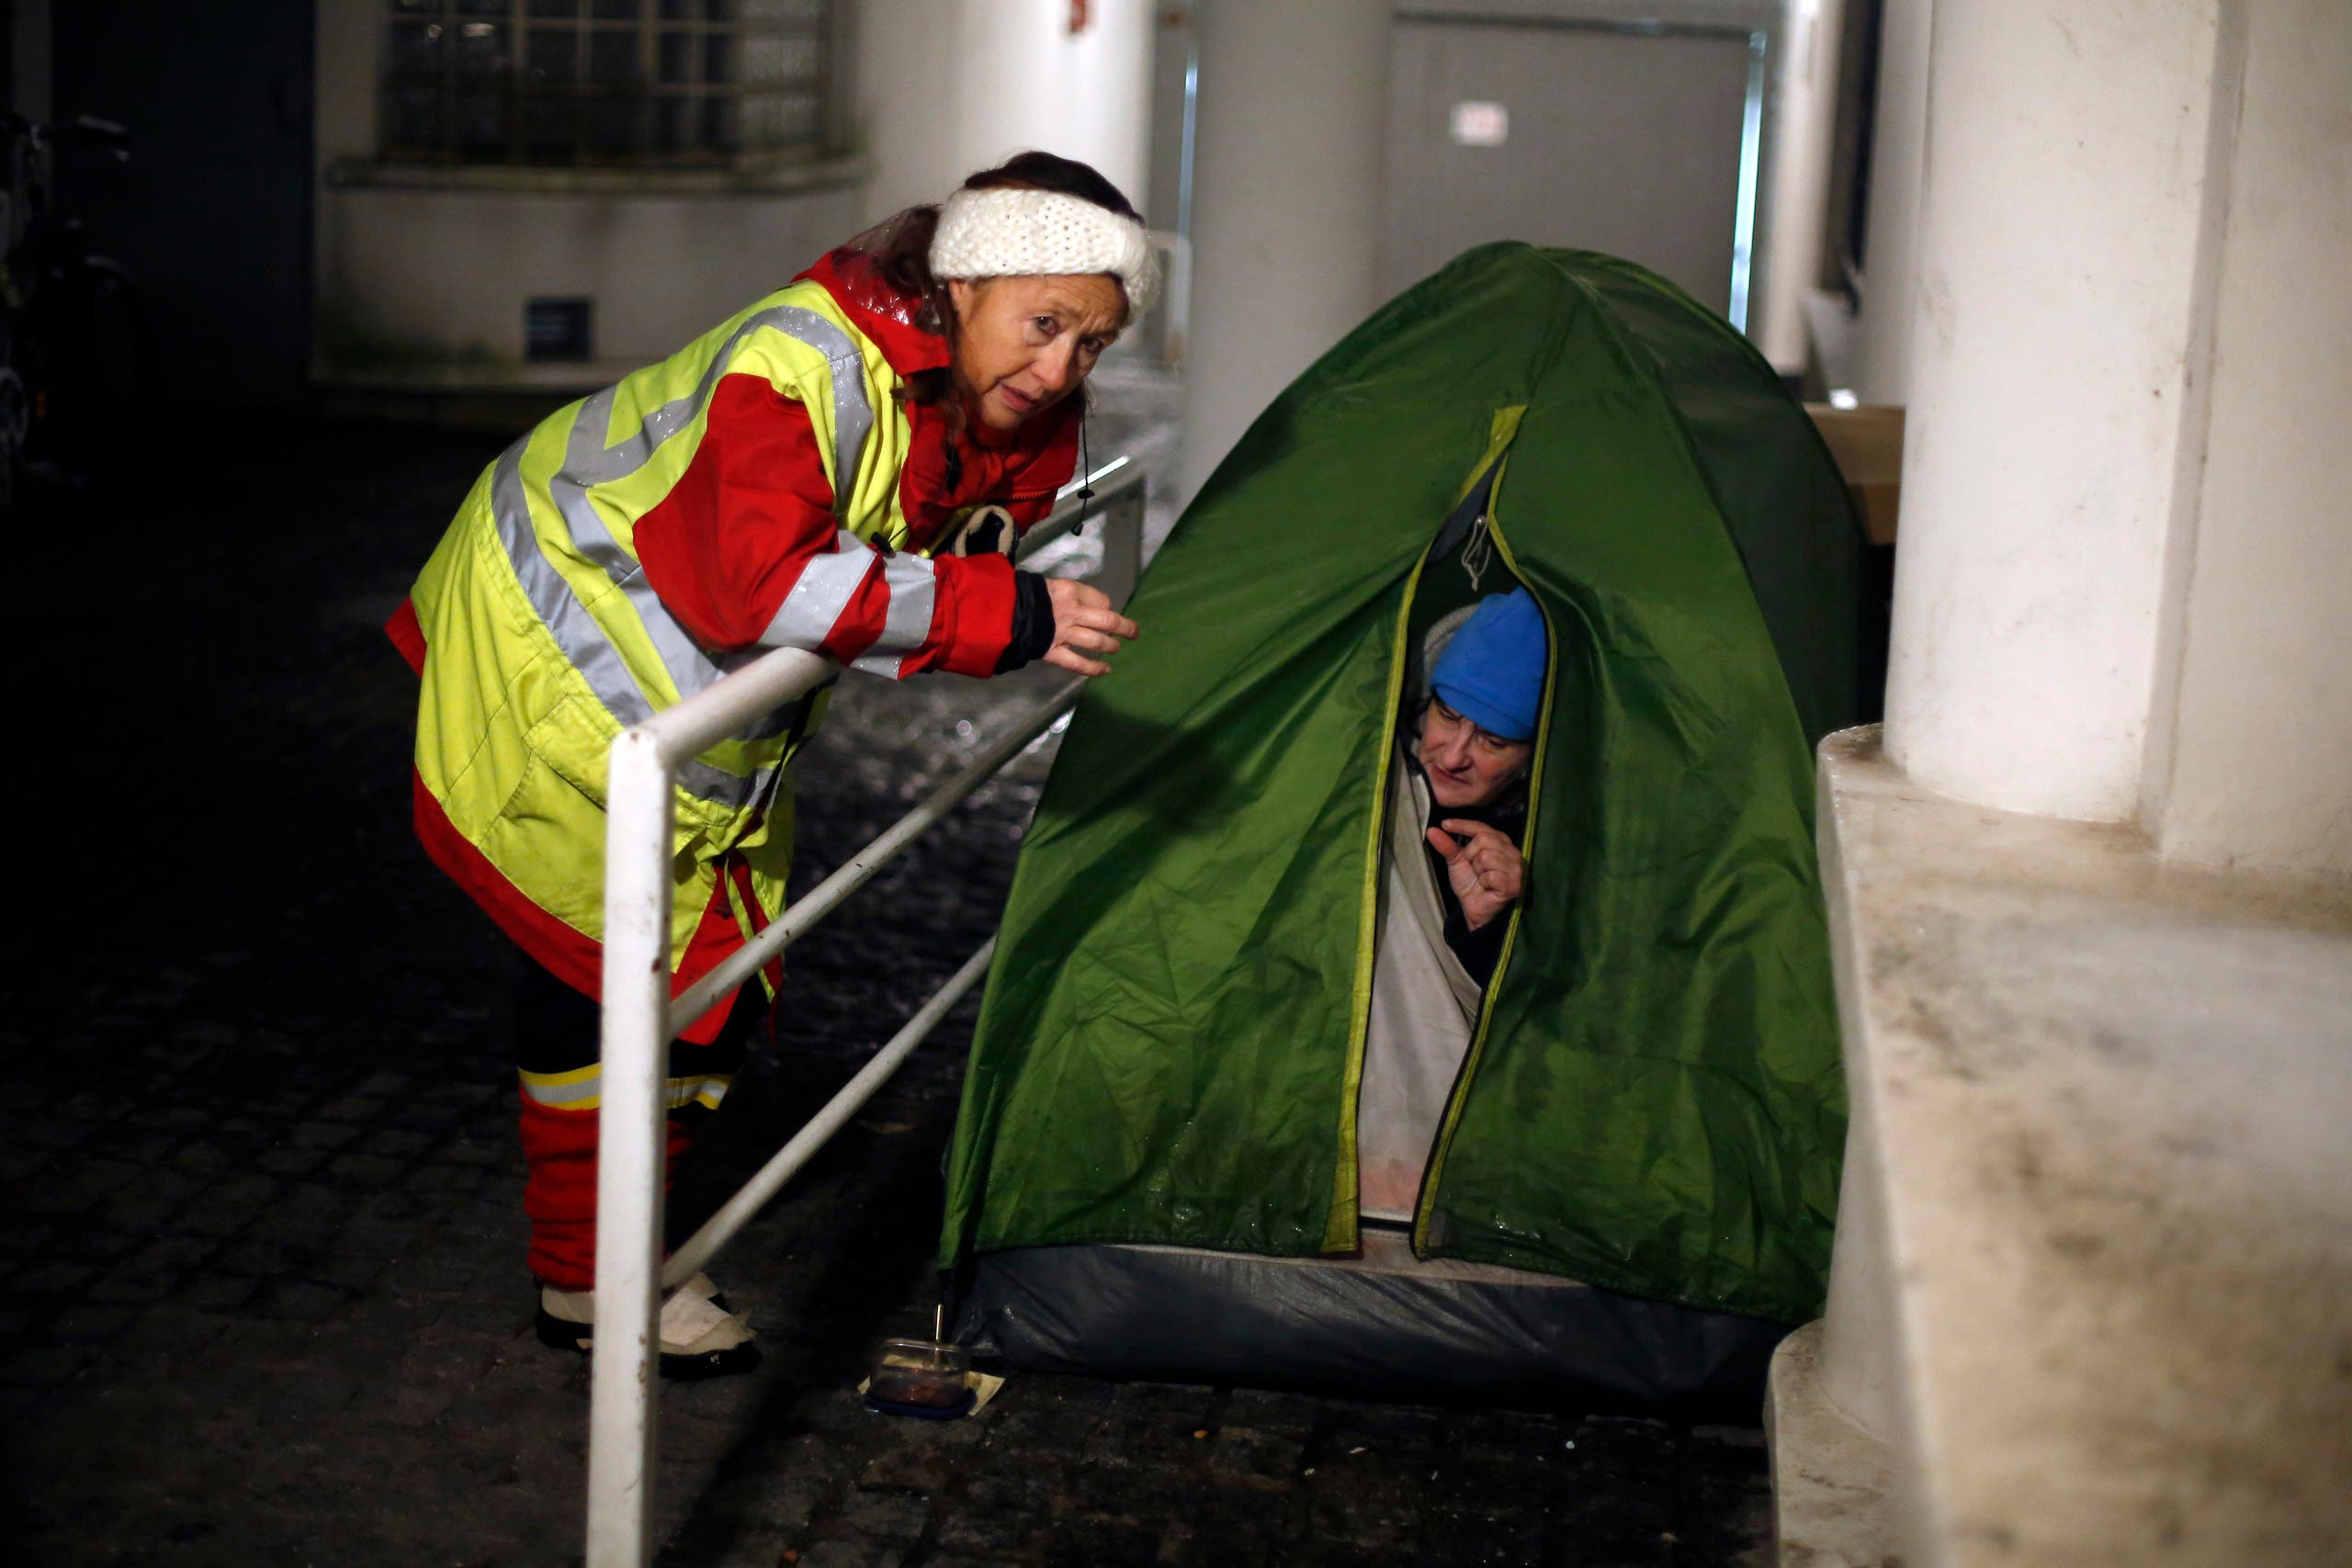 A volunteer worker from Malta, Marie Laure, left, talks with an homeless woman, Marie Luce, during a check on the homeless in Issy les Moulineaux, west of Paris, Tuesday, Feb. 6, 2018. France's national weather agency Meteo France said Monday about half the country is on alert for dangerous levels of snow and ice. (AP Photo)